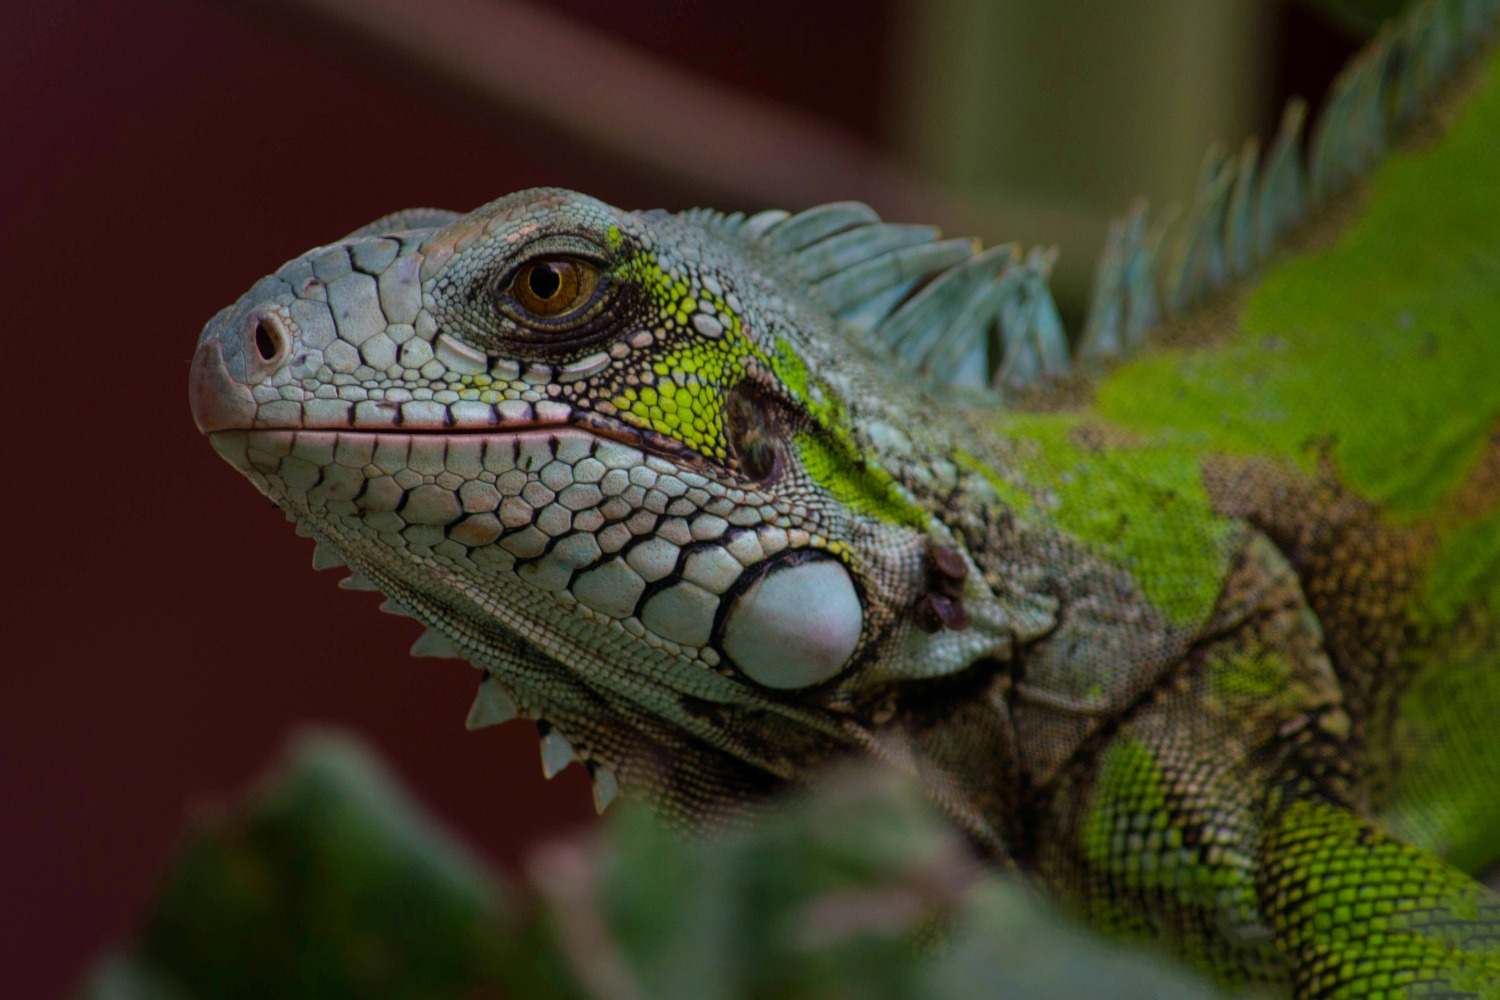 Eat Invasive Green Iguana To Save The Environment